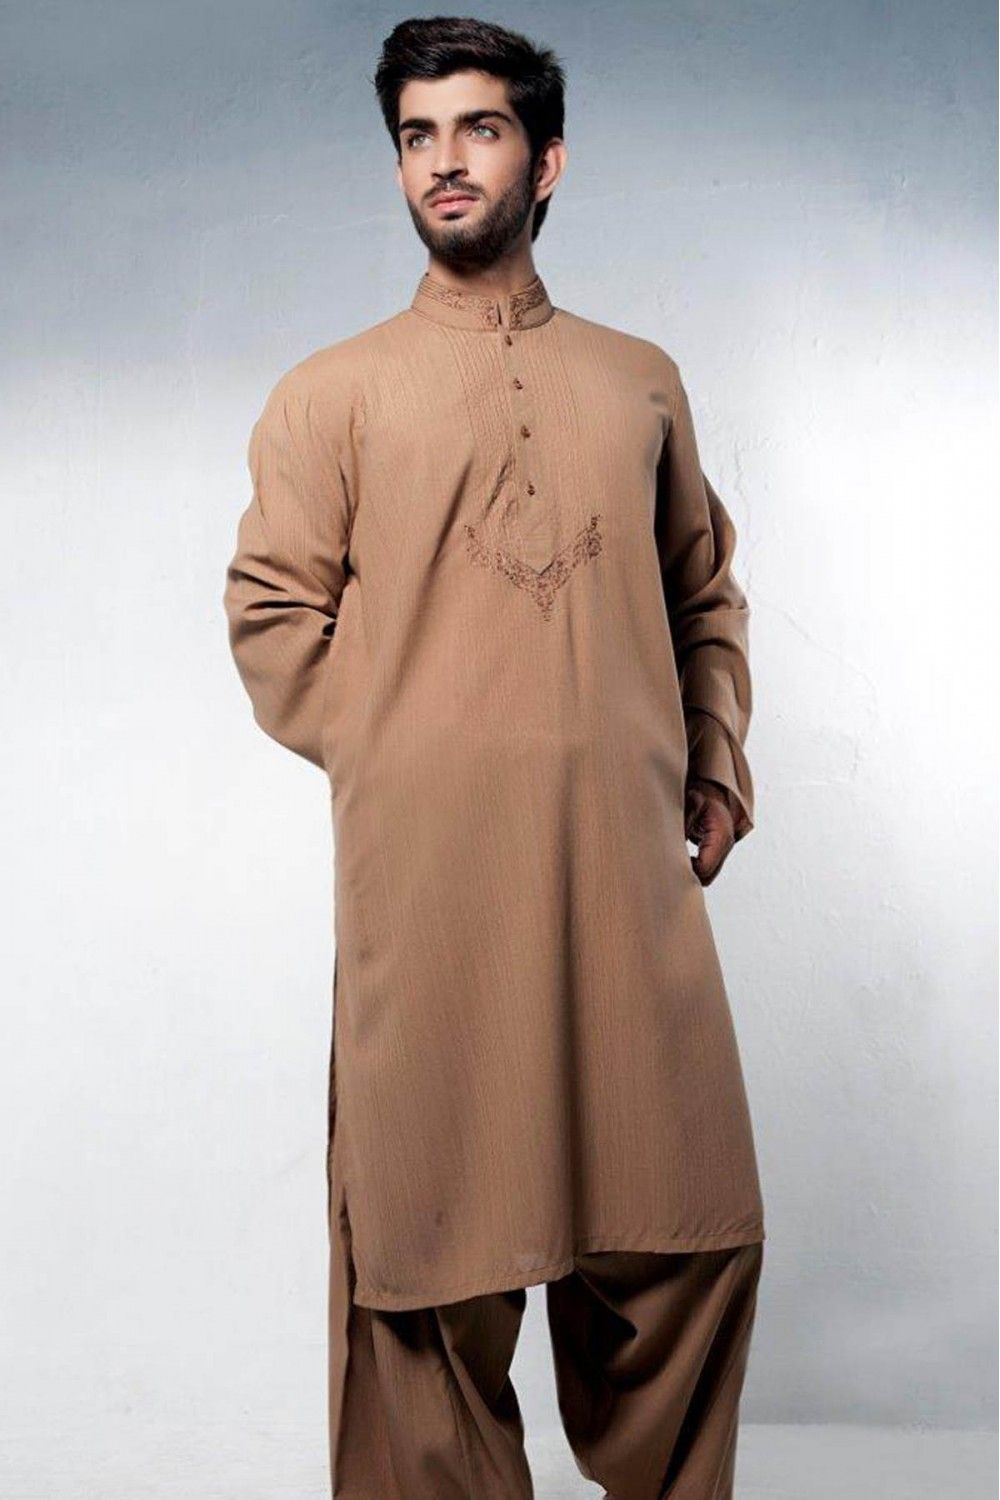 pakistani boys fashion salwar kameez 2014 wwwpixshark